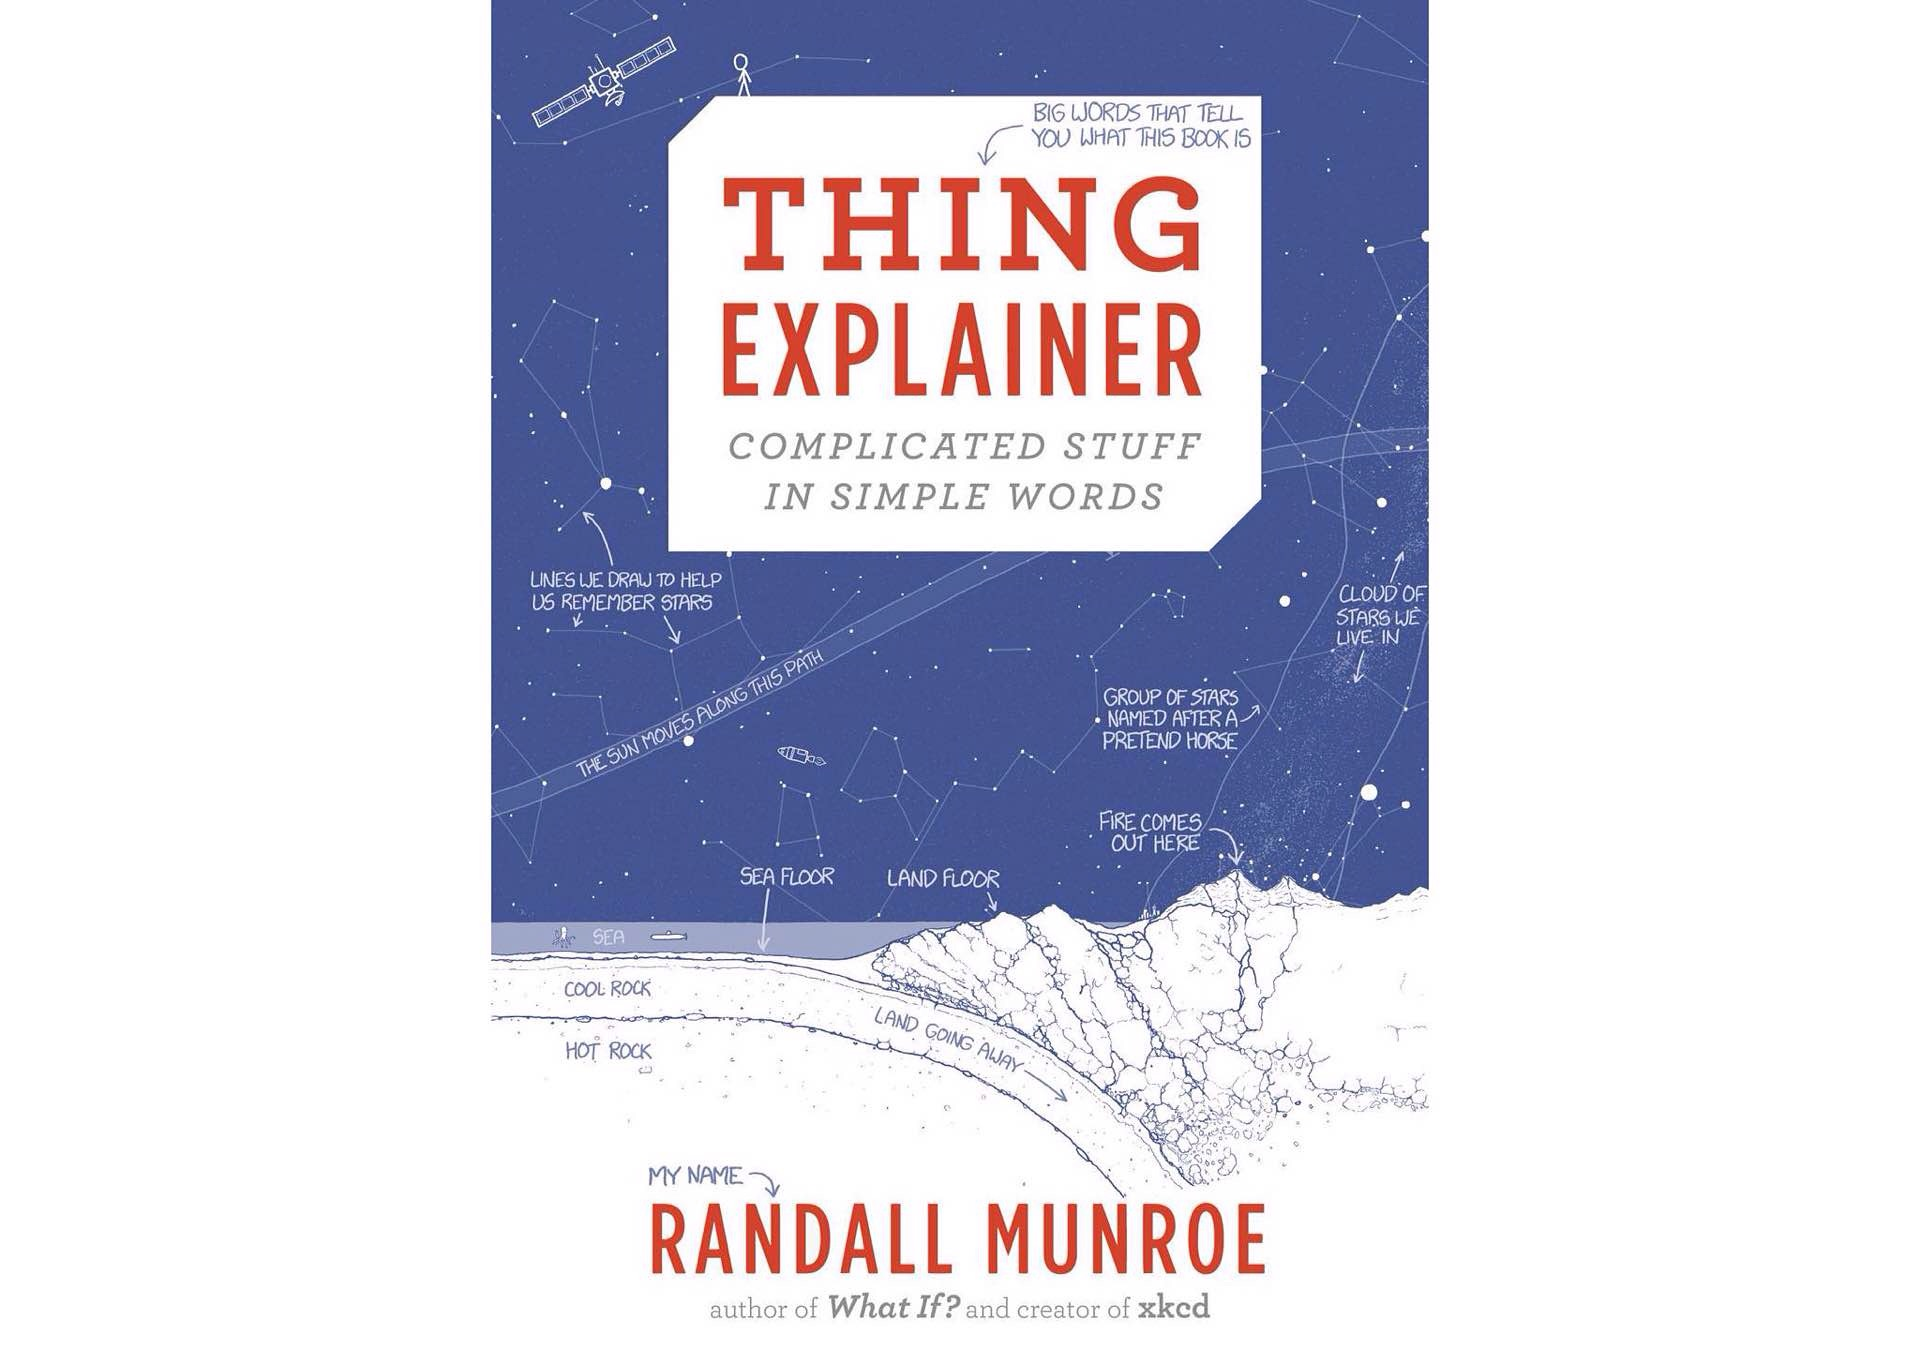 Thing Explainer by Randall Munroe. (Releases November 24th, 2015.)